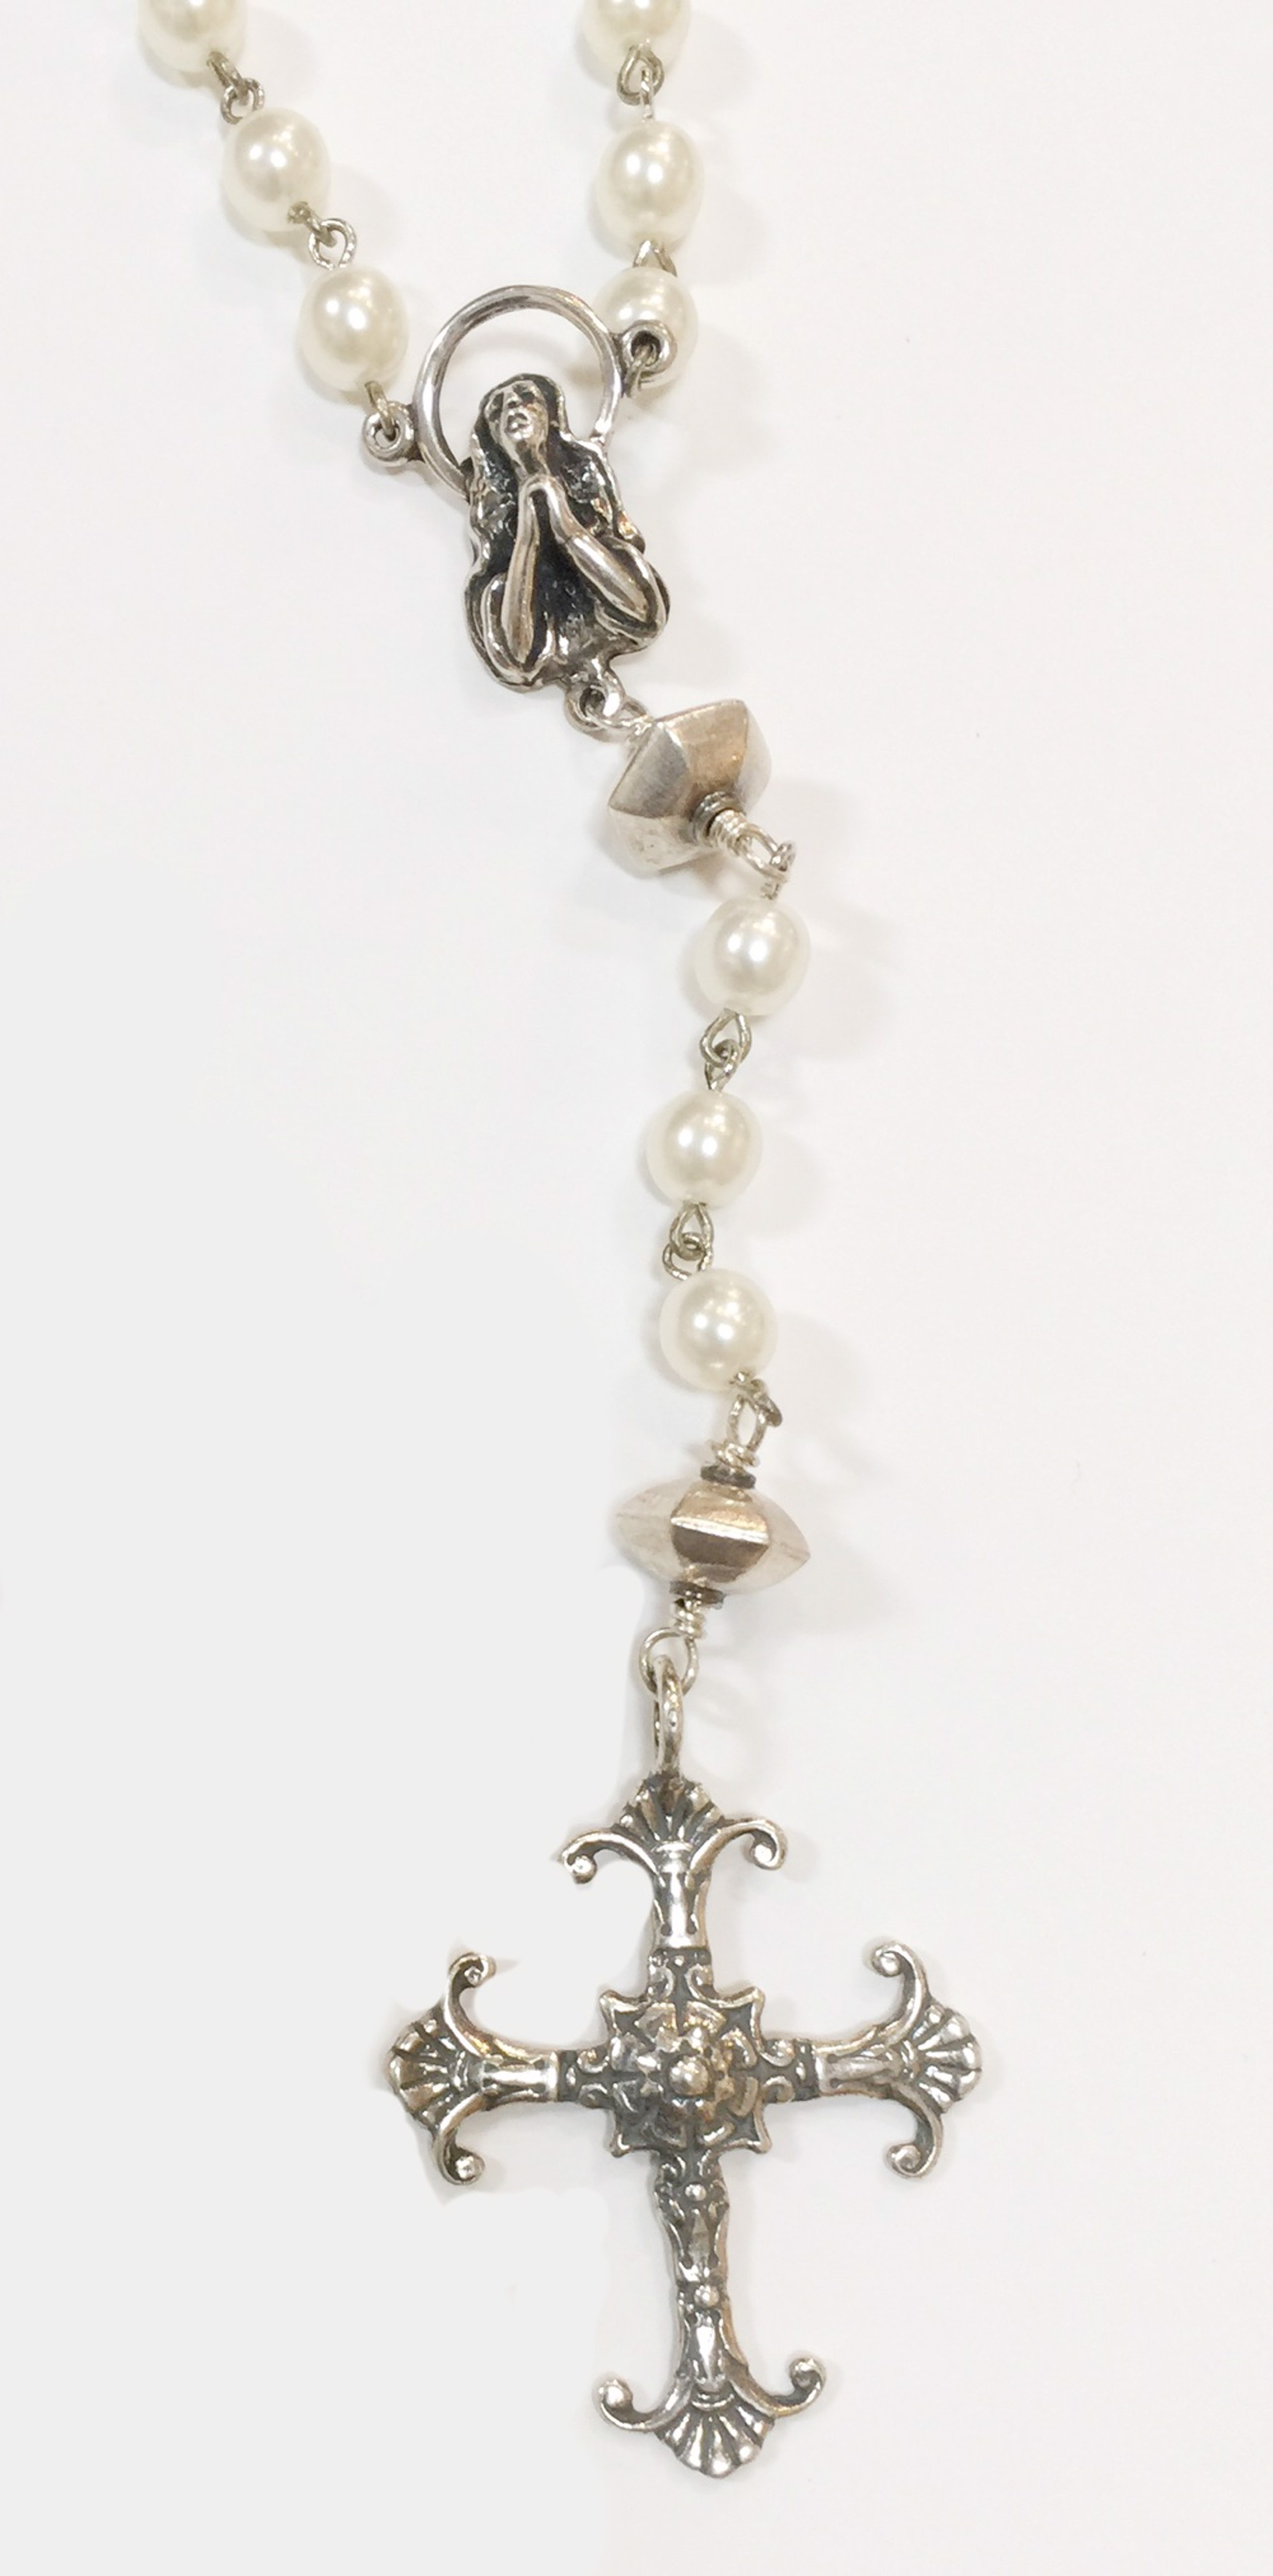 Necklace - Rosary of Pearl & Silver 8447 by Deanne McKeown